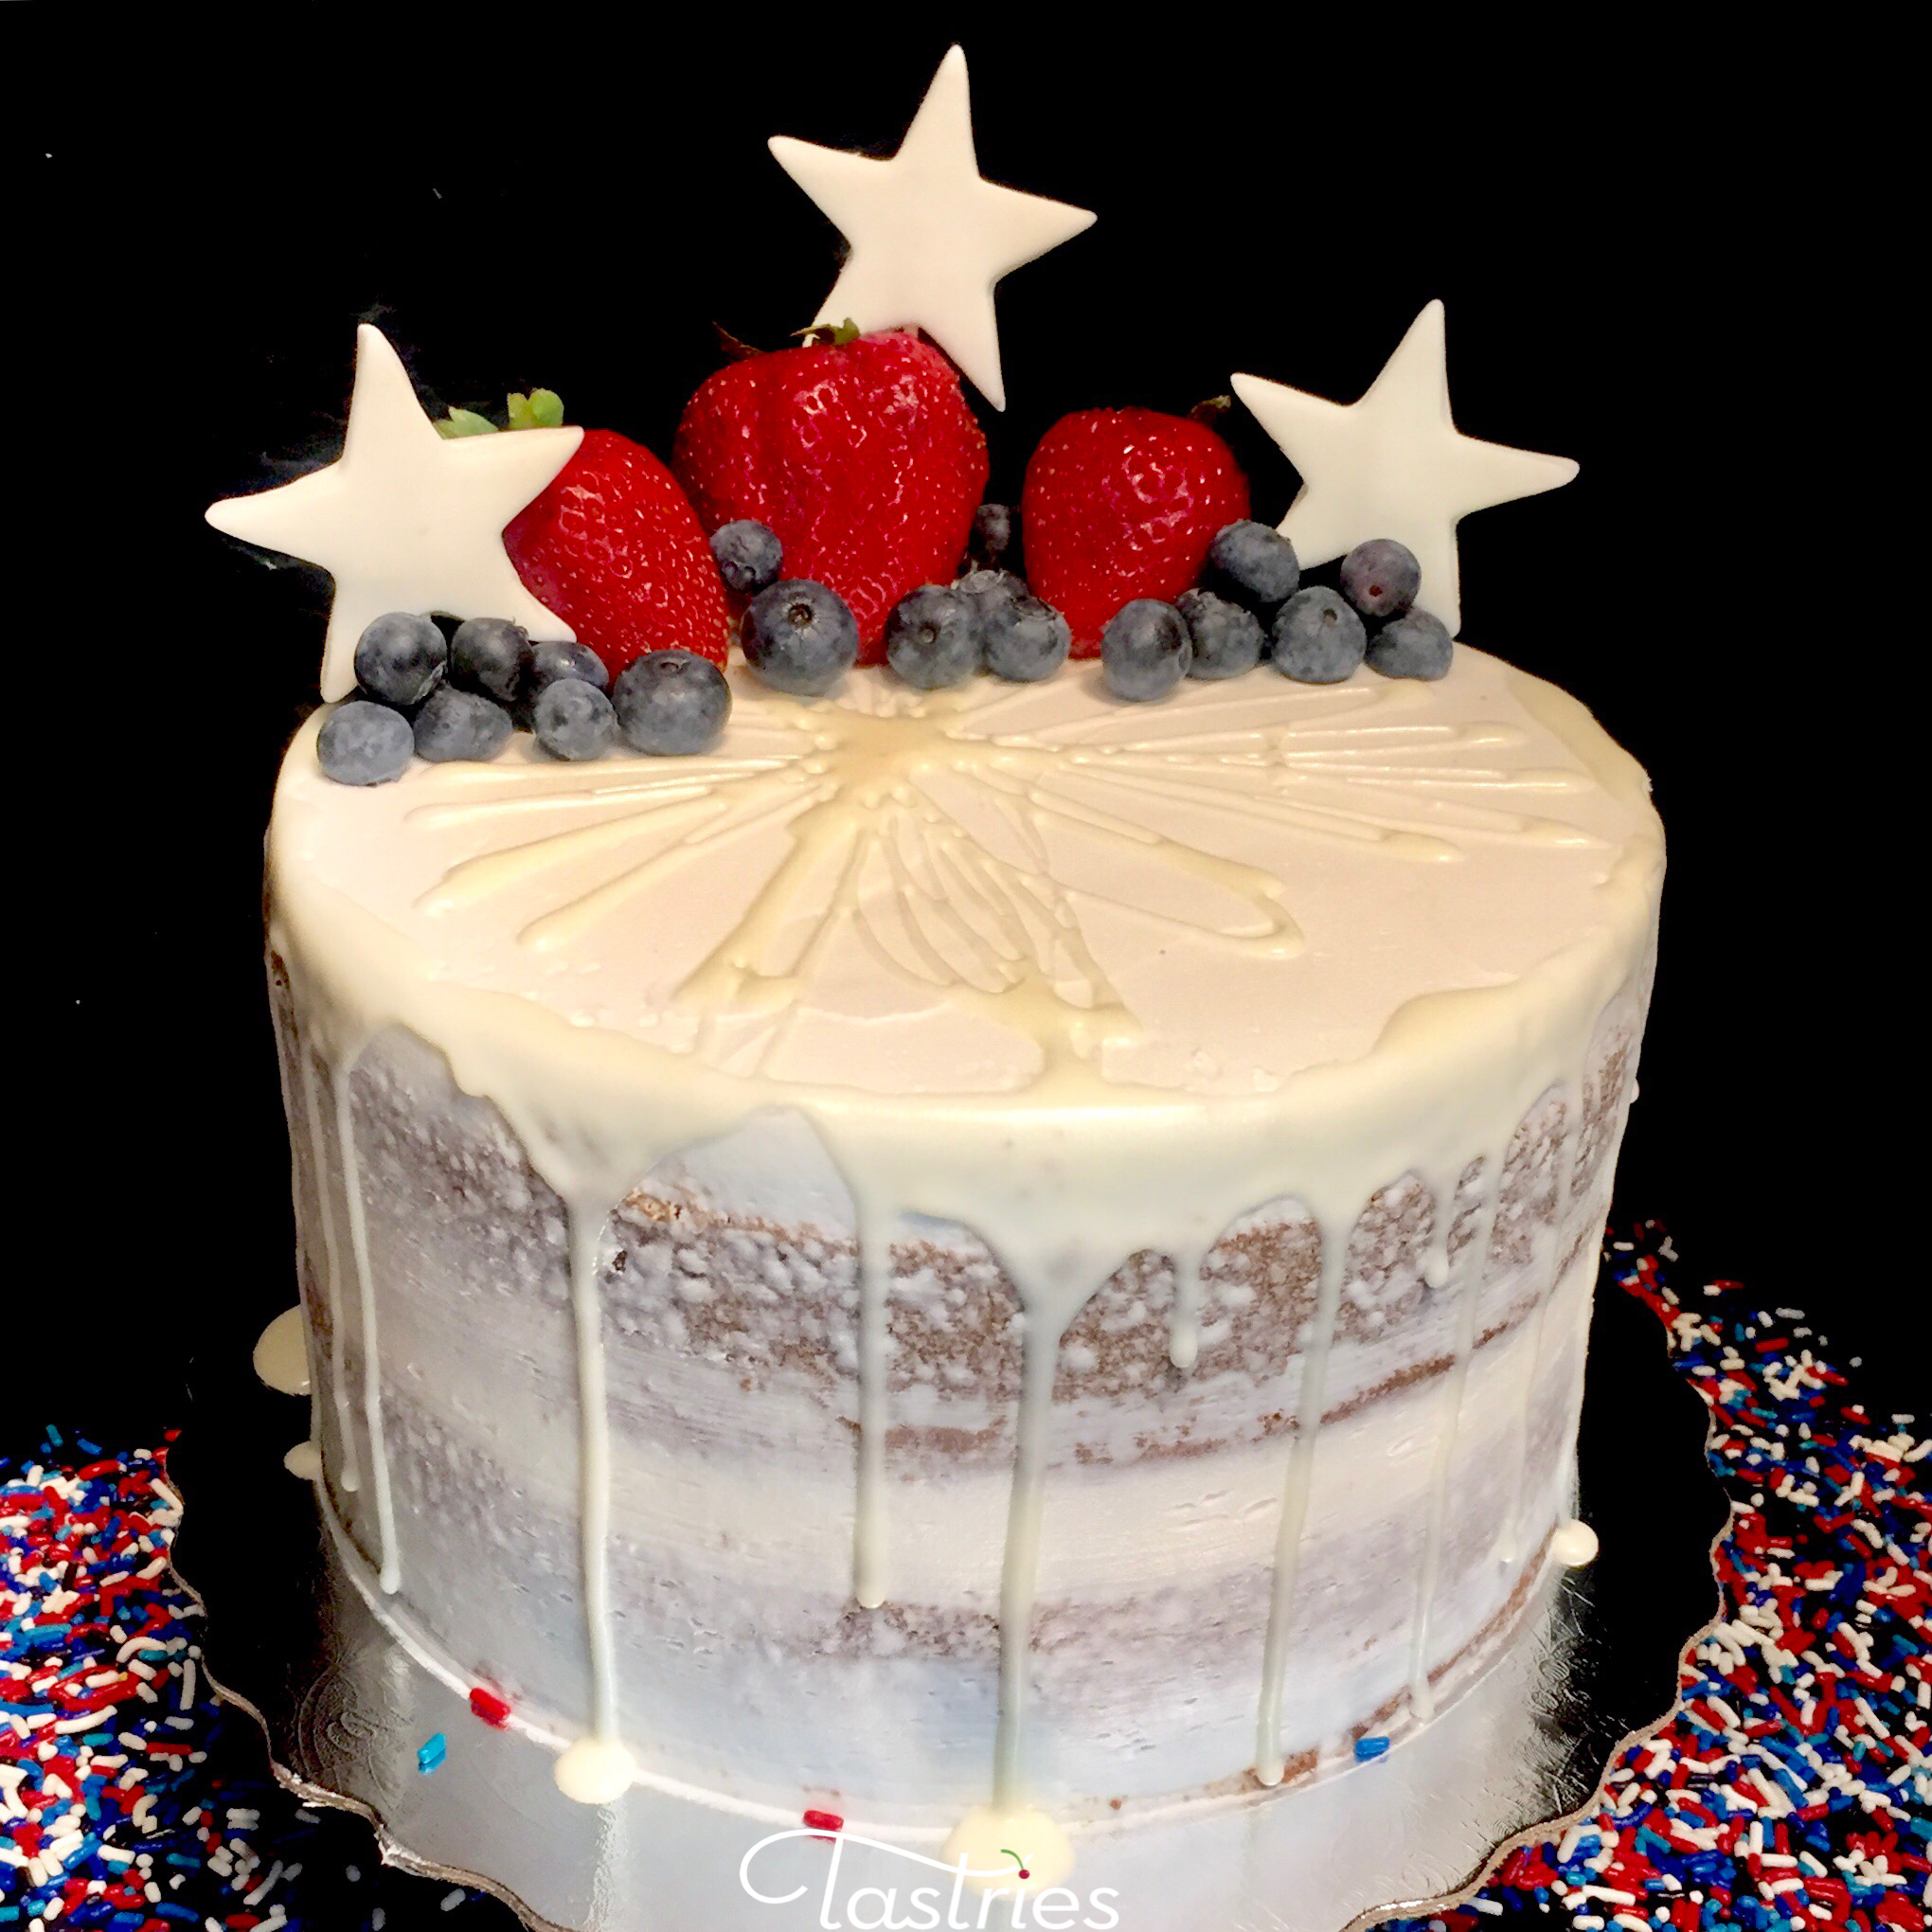 Patriotic Dessert Cake, 4th of July